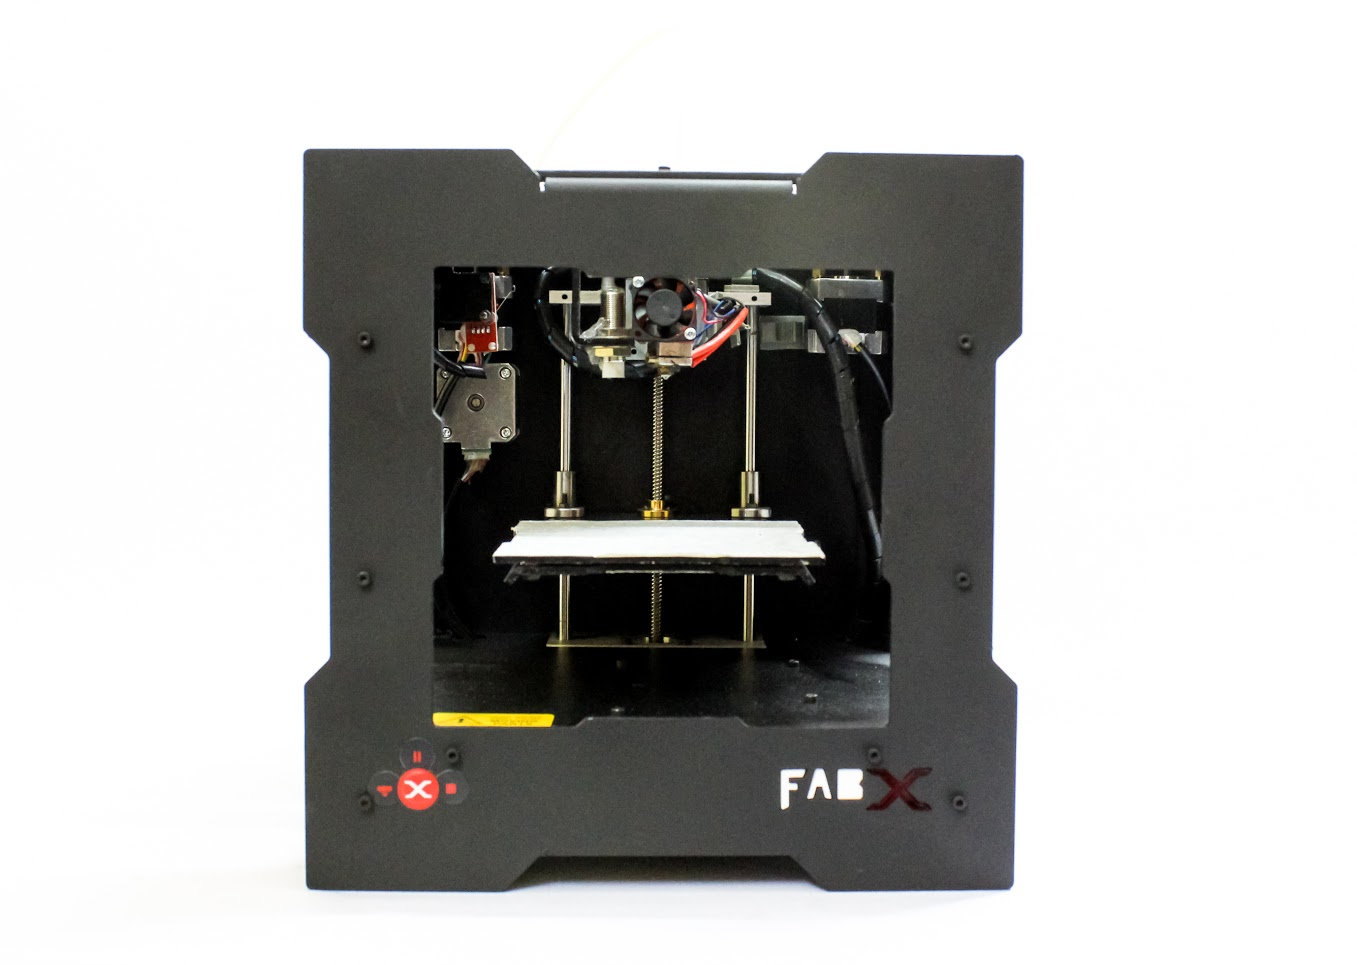 The FabX 3 Demonstrates The Strength Of Regional 3D Printing Manufacturers